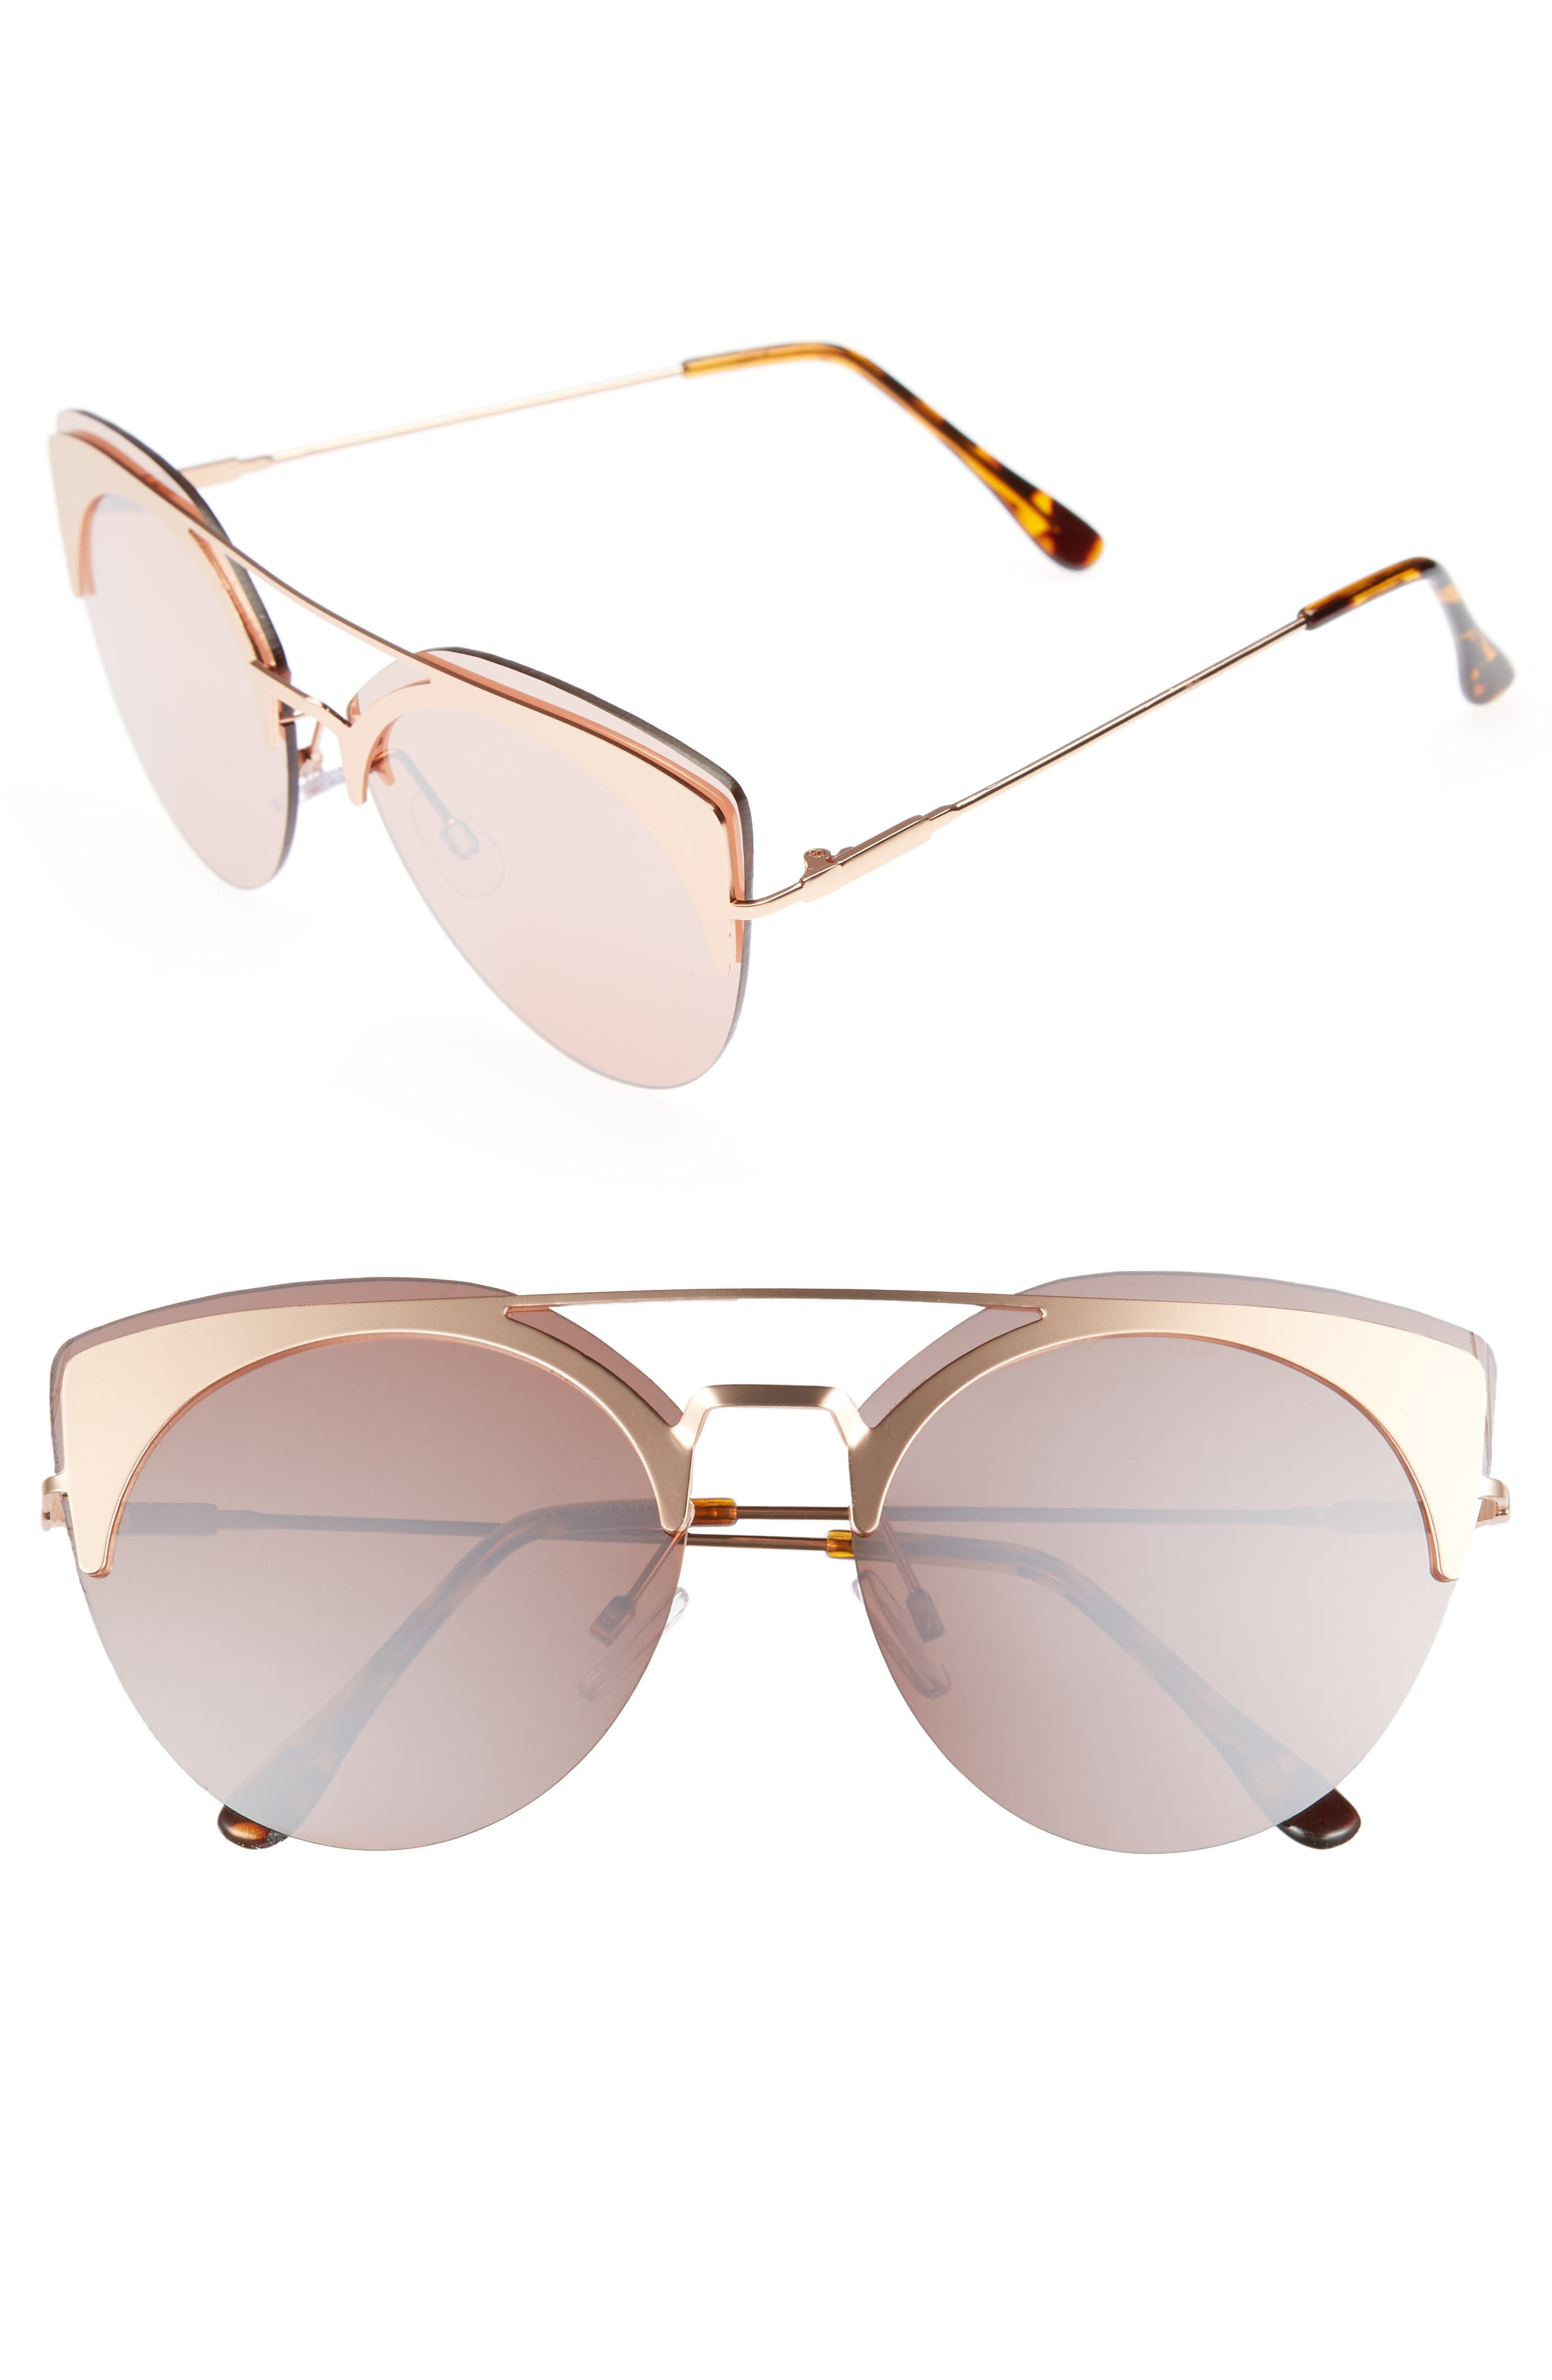 Alternate Image 1 Selected - BP. 54mm Round Sunglasses